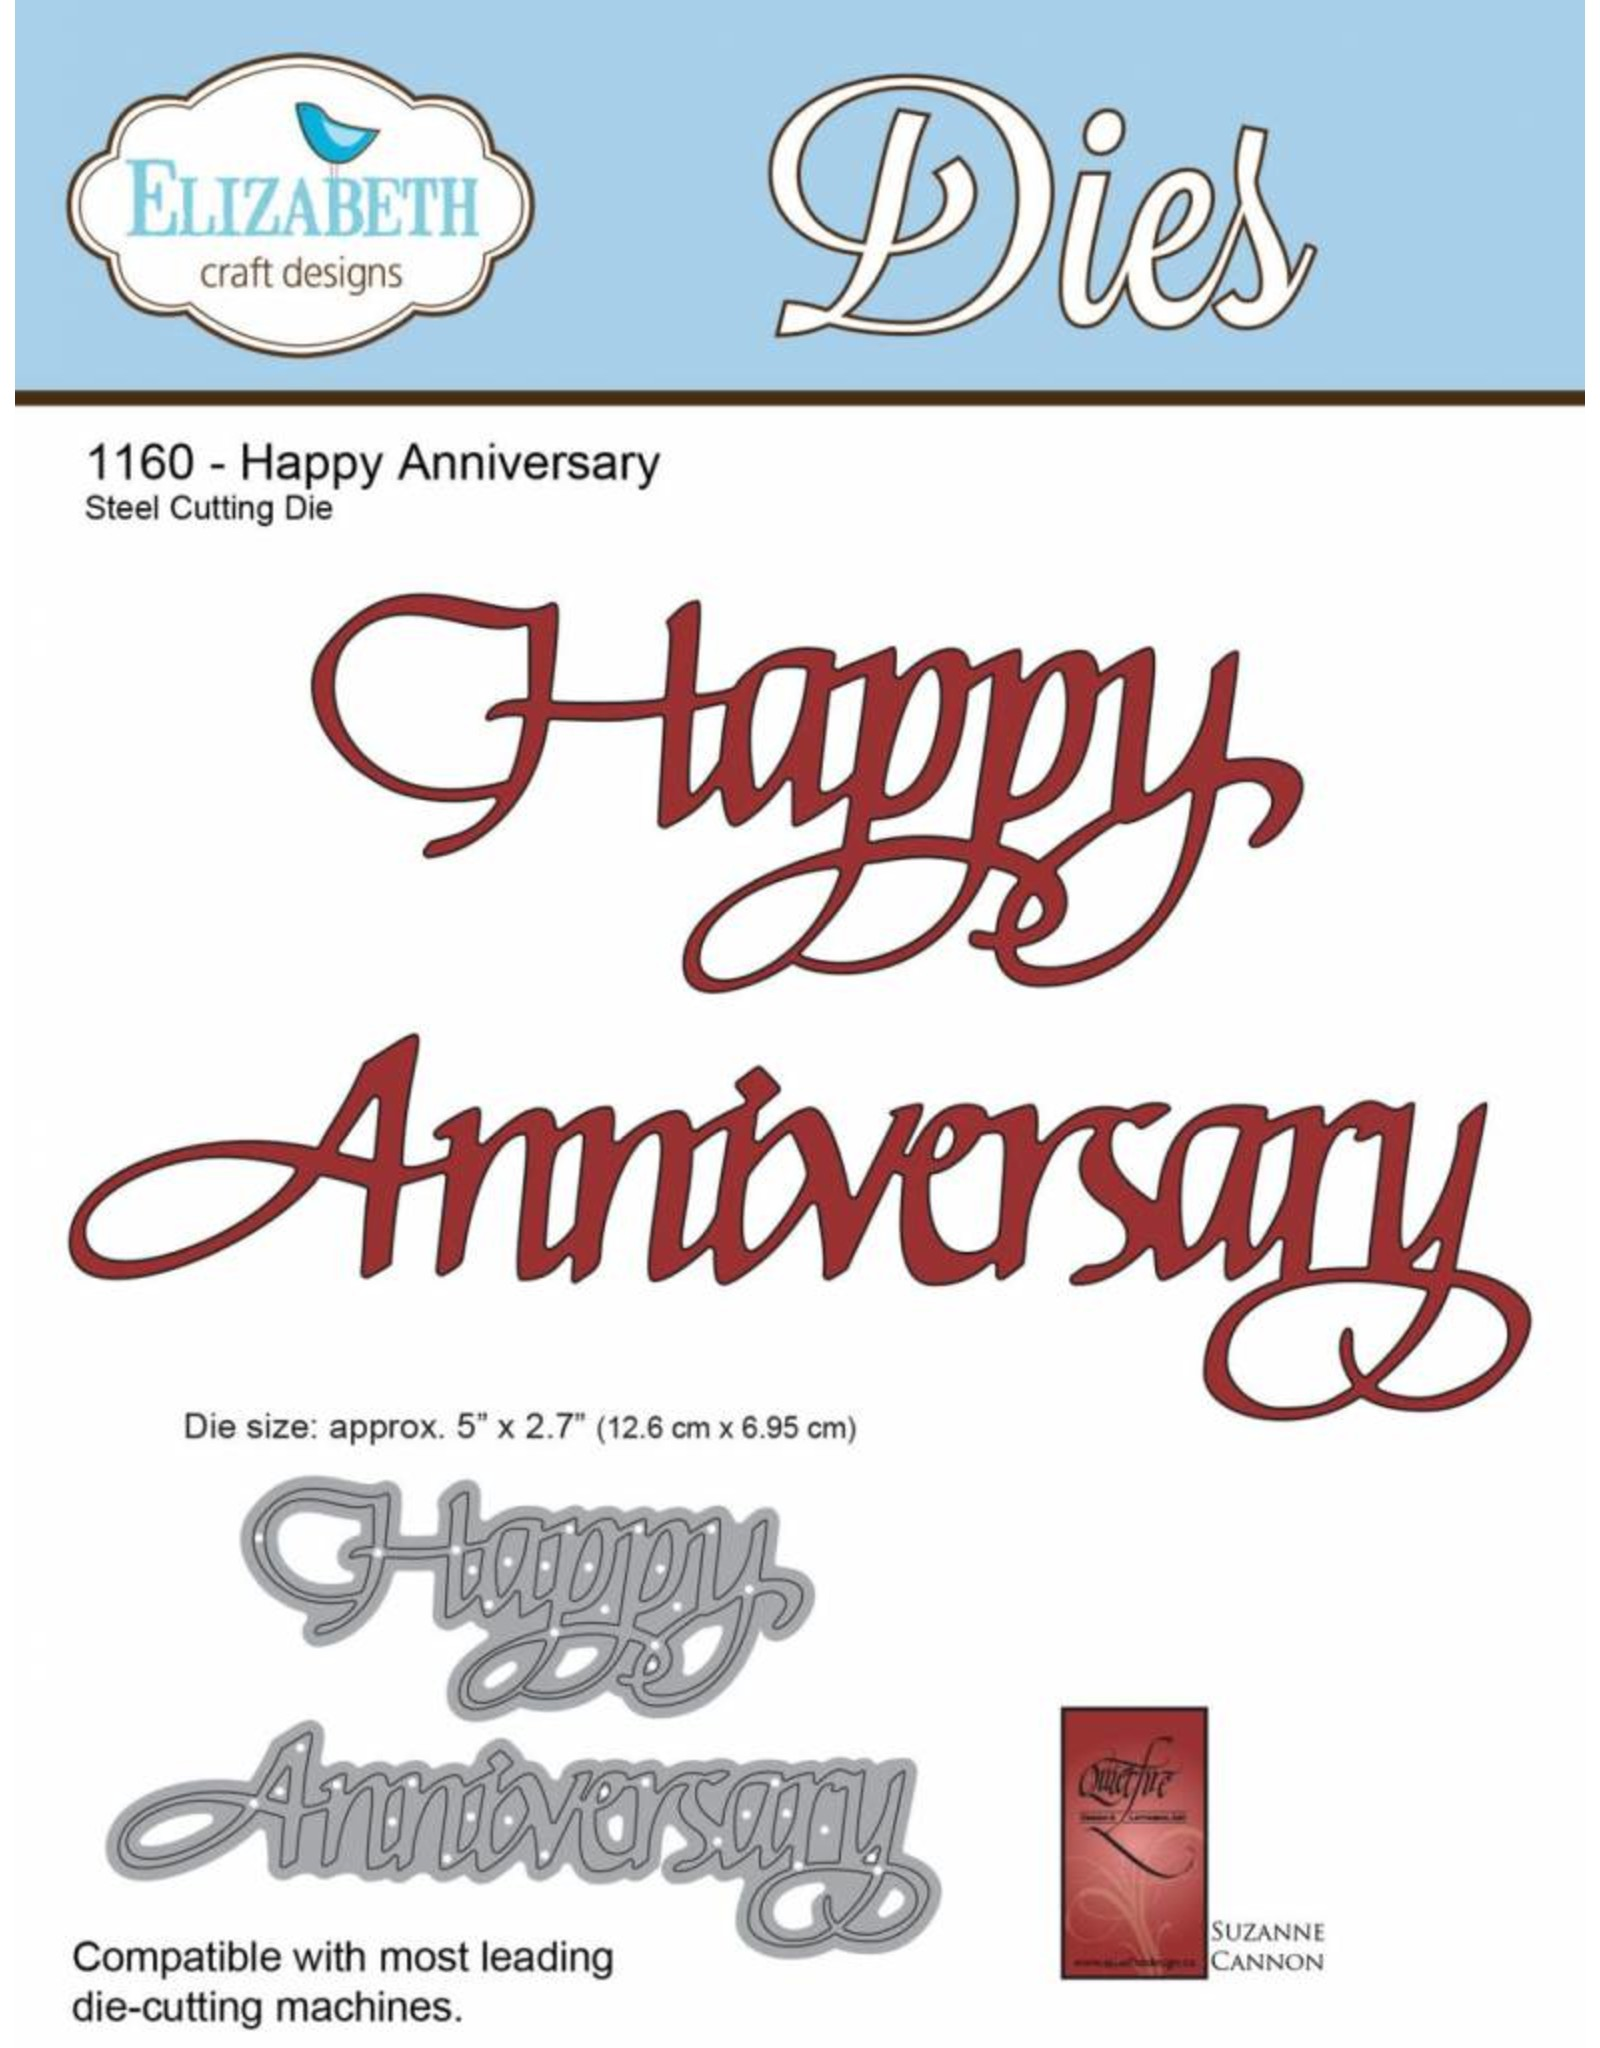 Elizabeth Craft Designs Elizabeth Craft Designs A Way With Words, Happy Anniversary  1160